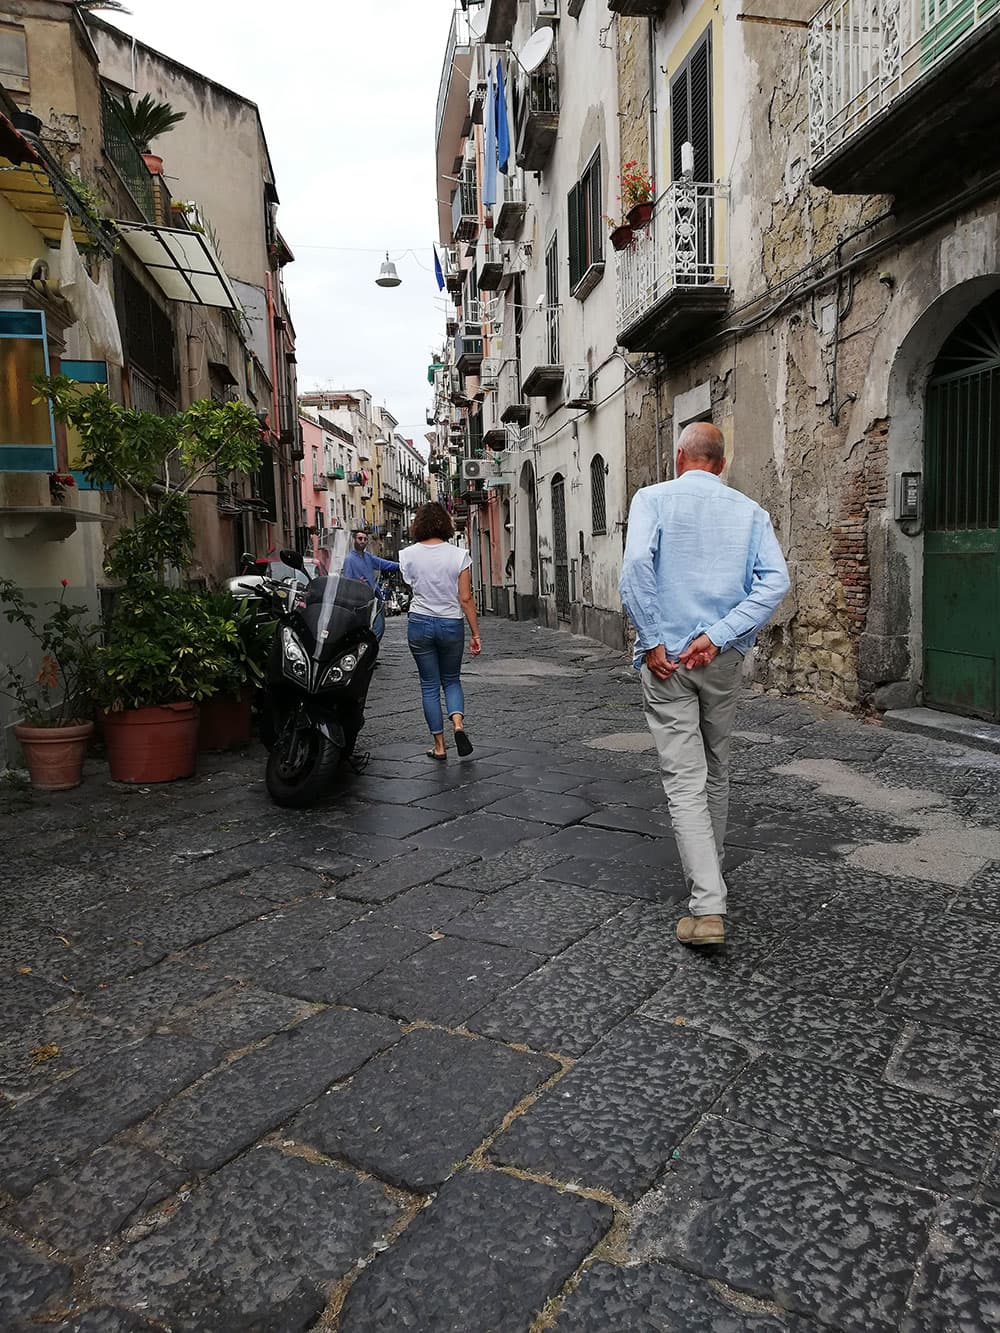 Walking down an authentic street in Naples